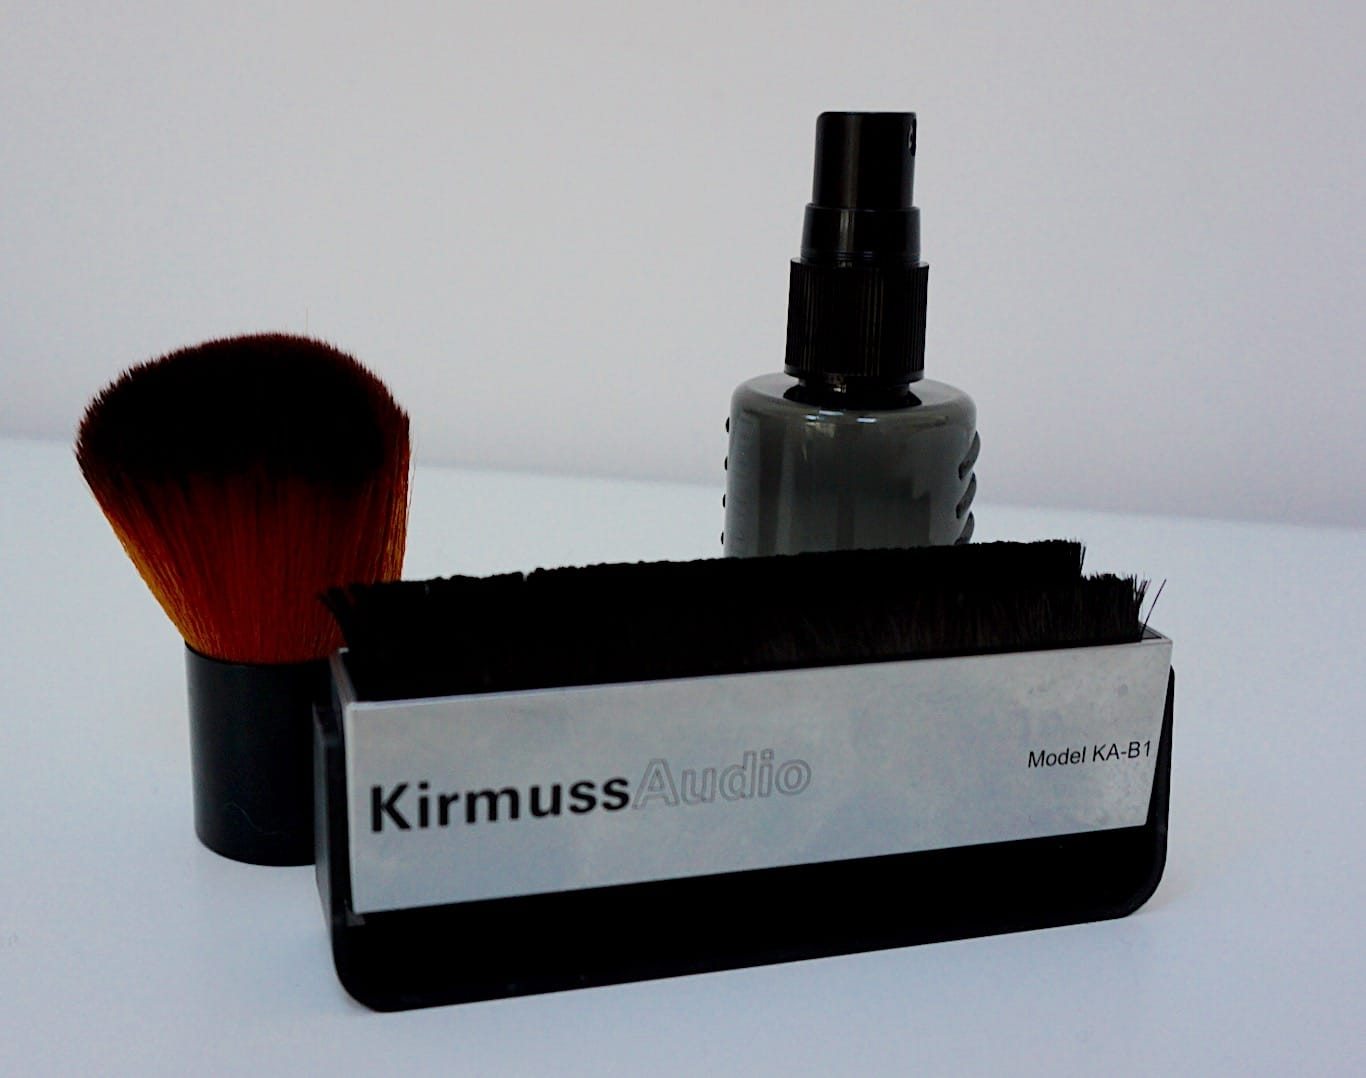 KA-RC-1 Ultrasonic Record Cleaner From Kirmuss